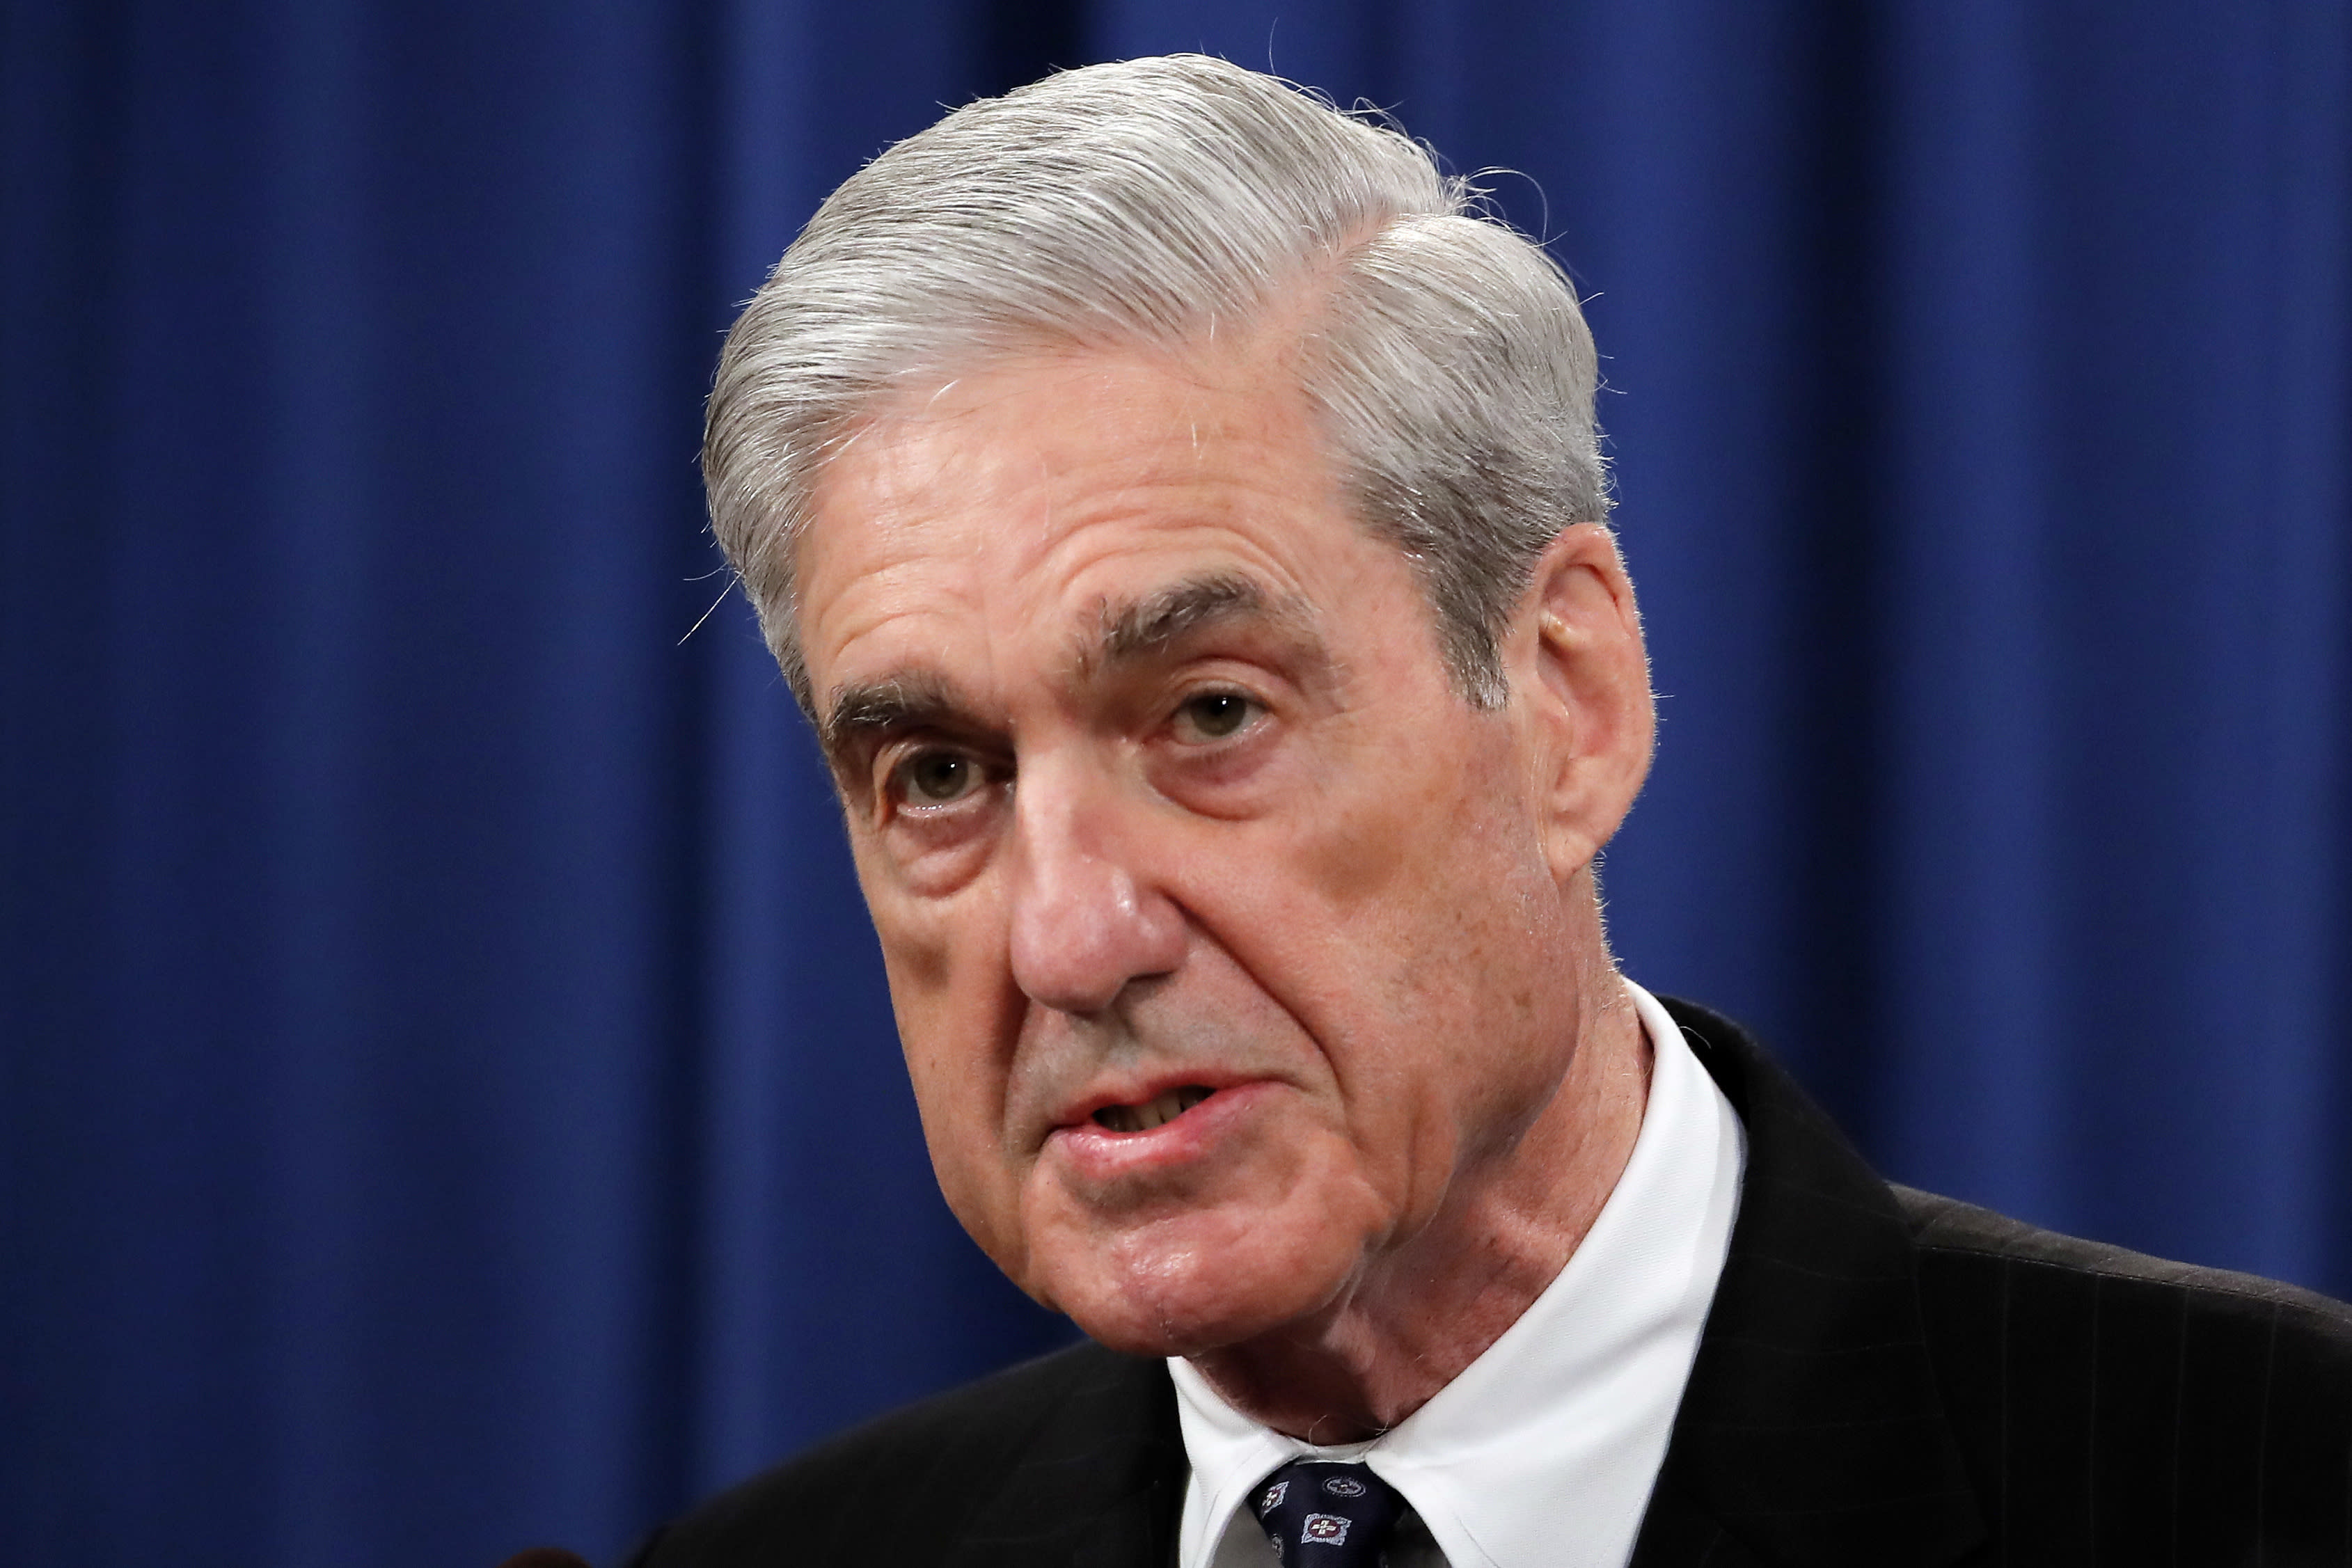 House Judiciary Committee to Air 'Evidence' of Trump's Wrongdoing in Mueller Hearing